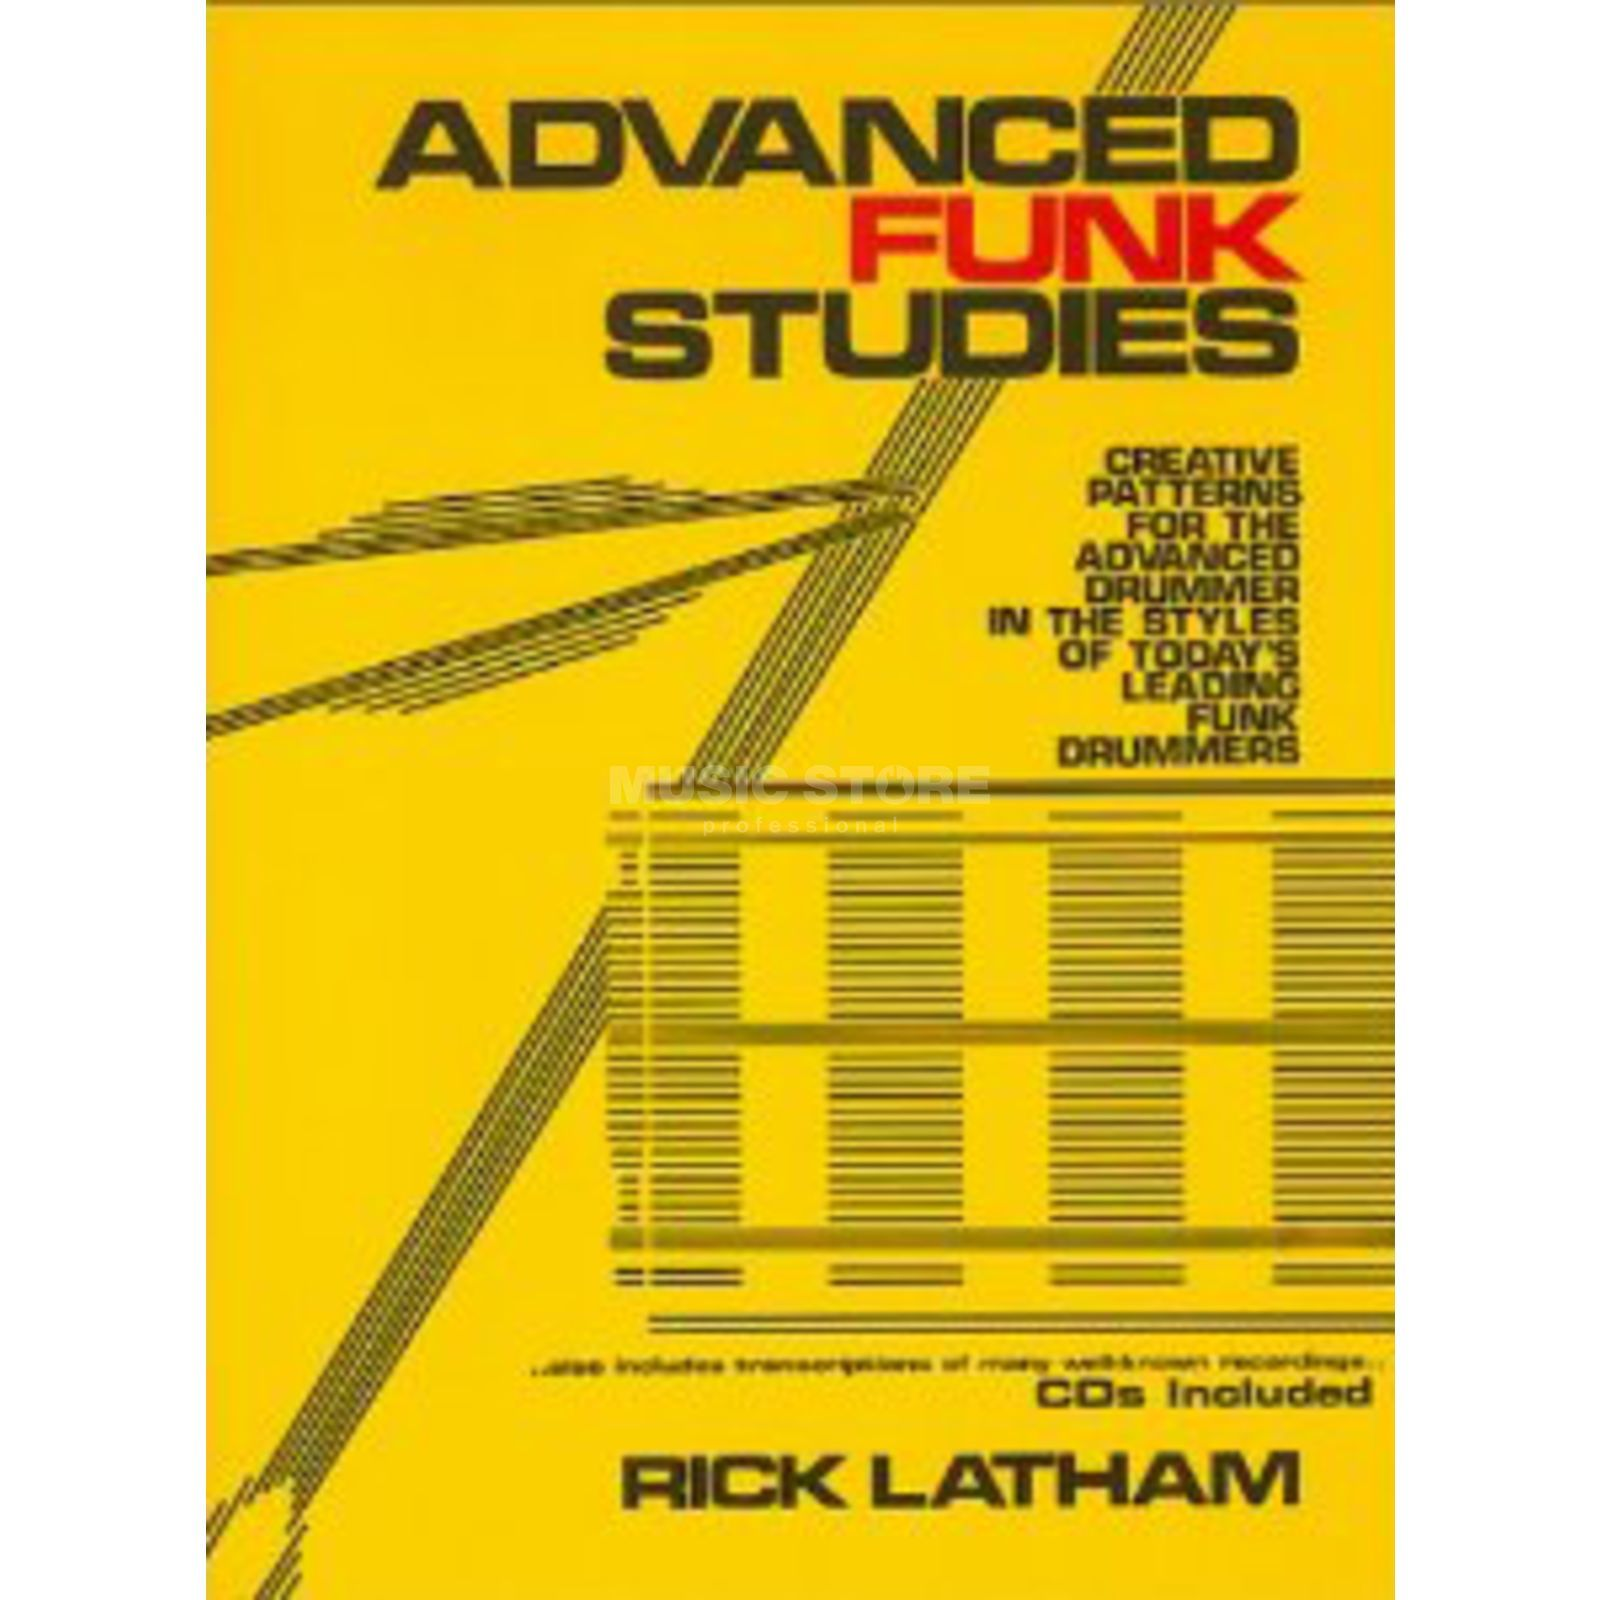 Alfred Music Advanced Funk Studies Rick Latham, Drums inkl. 2CDs Produktbild